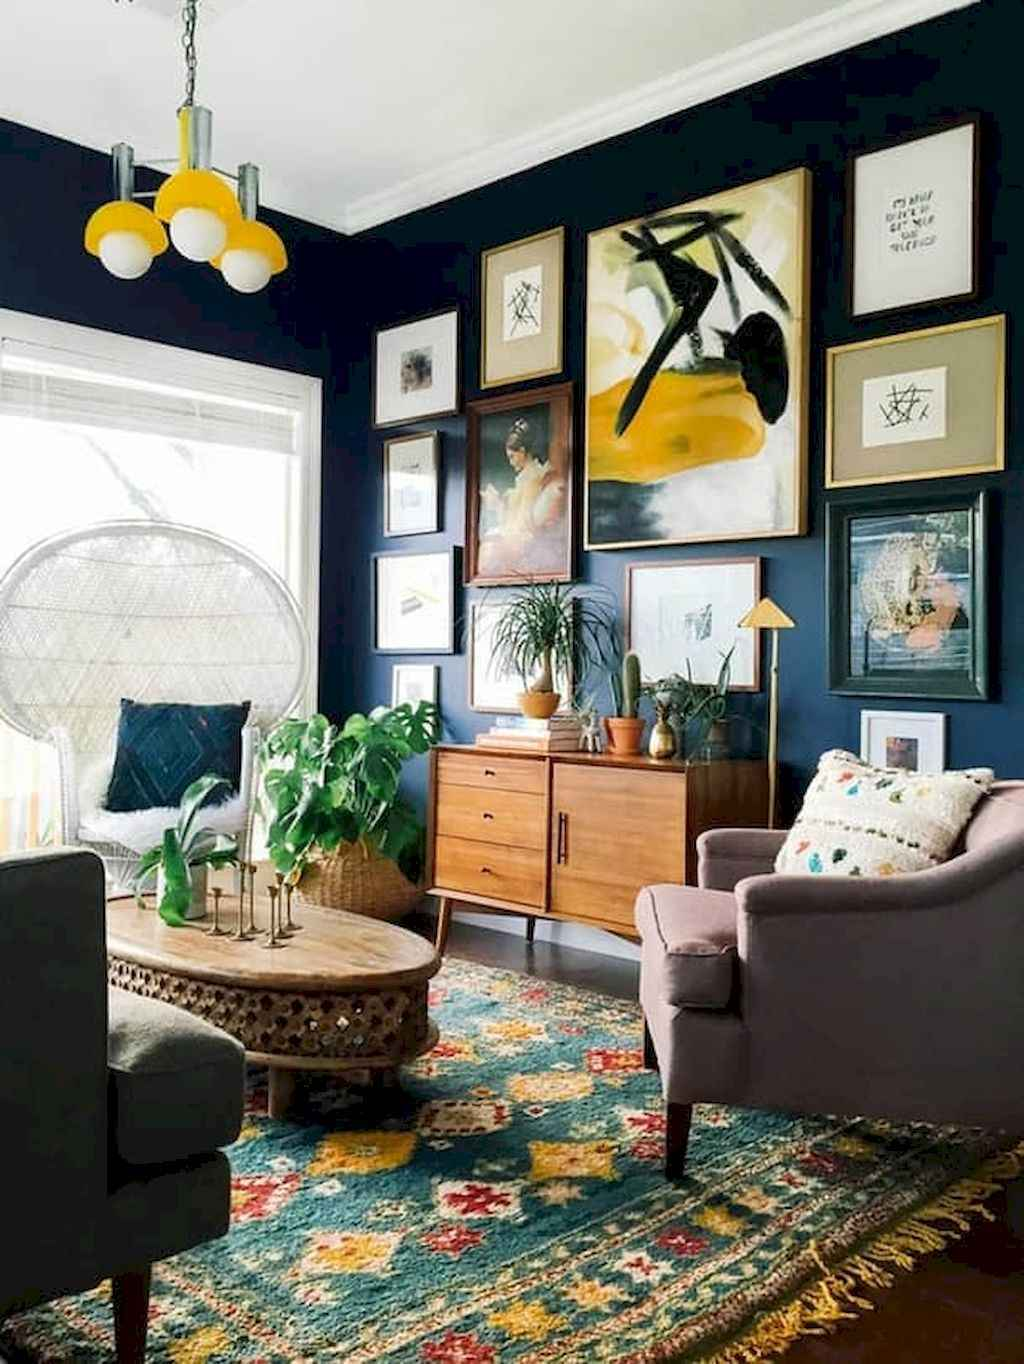 Awesome apartment living room decorating ideas (1)